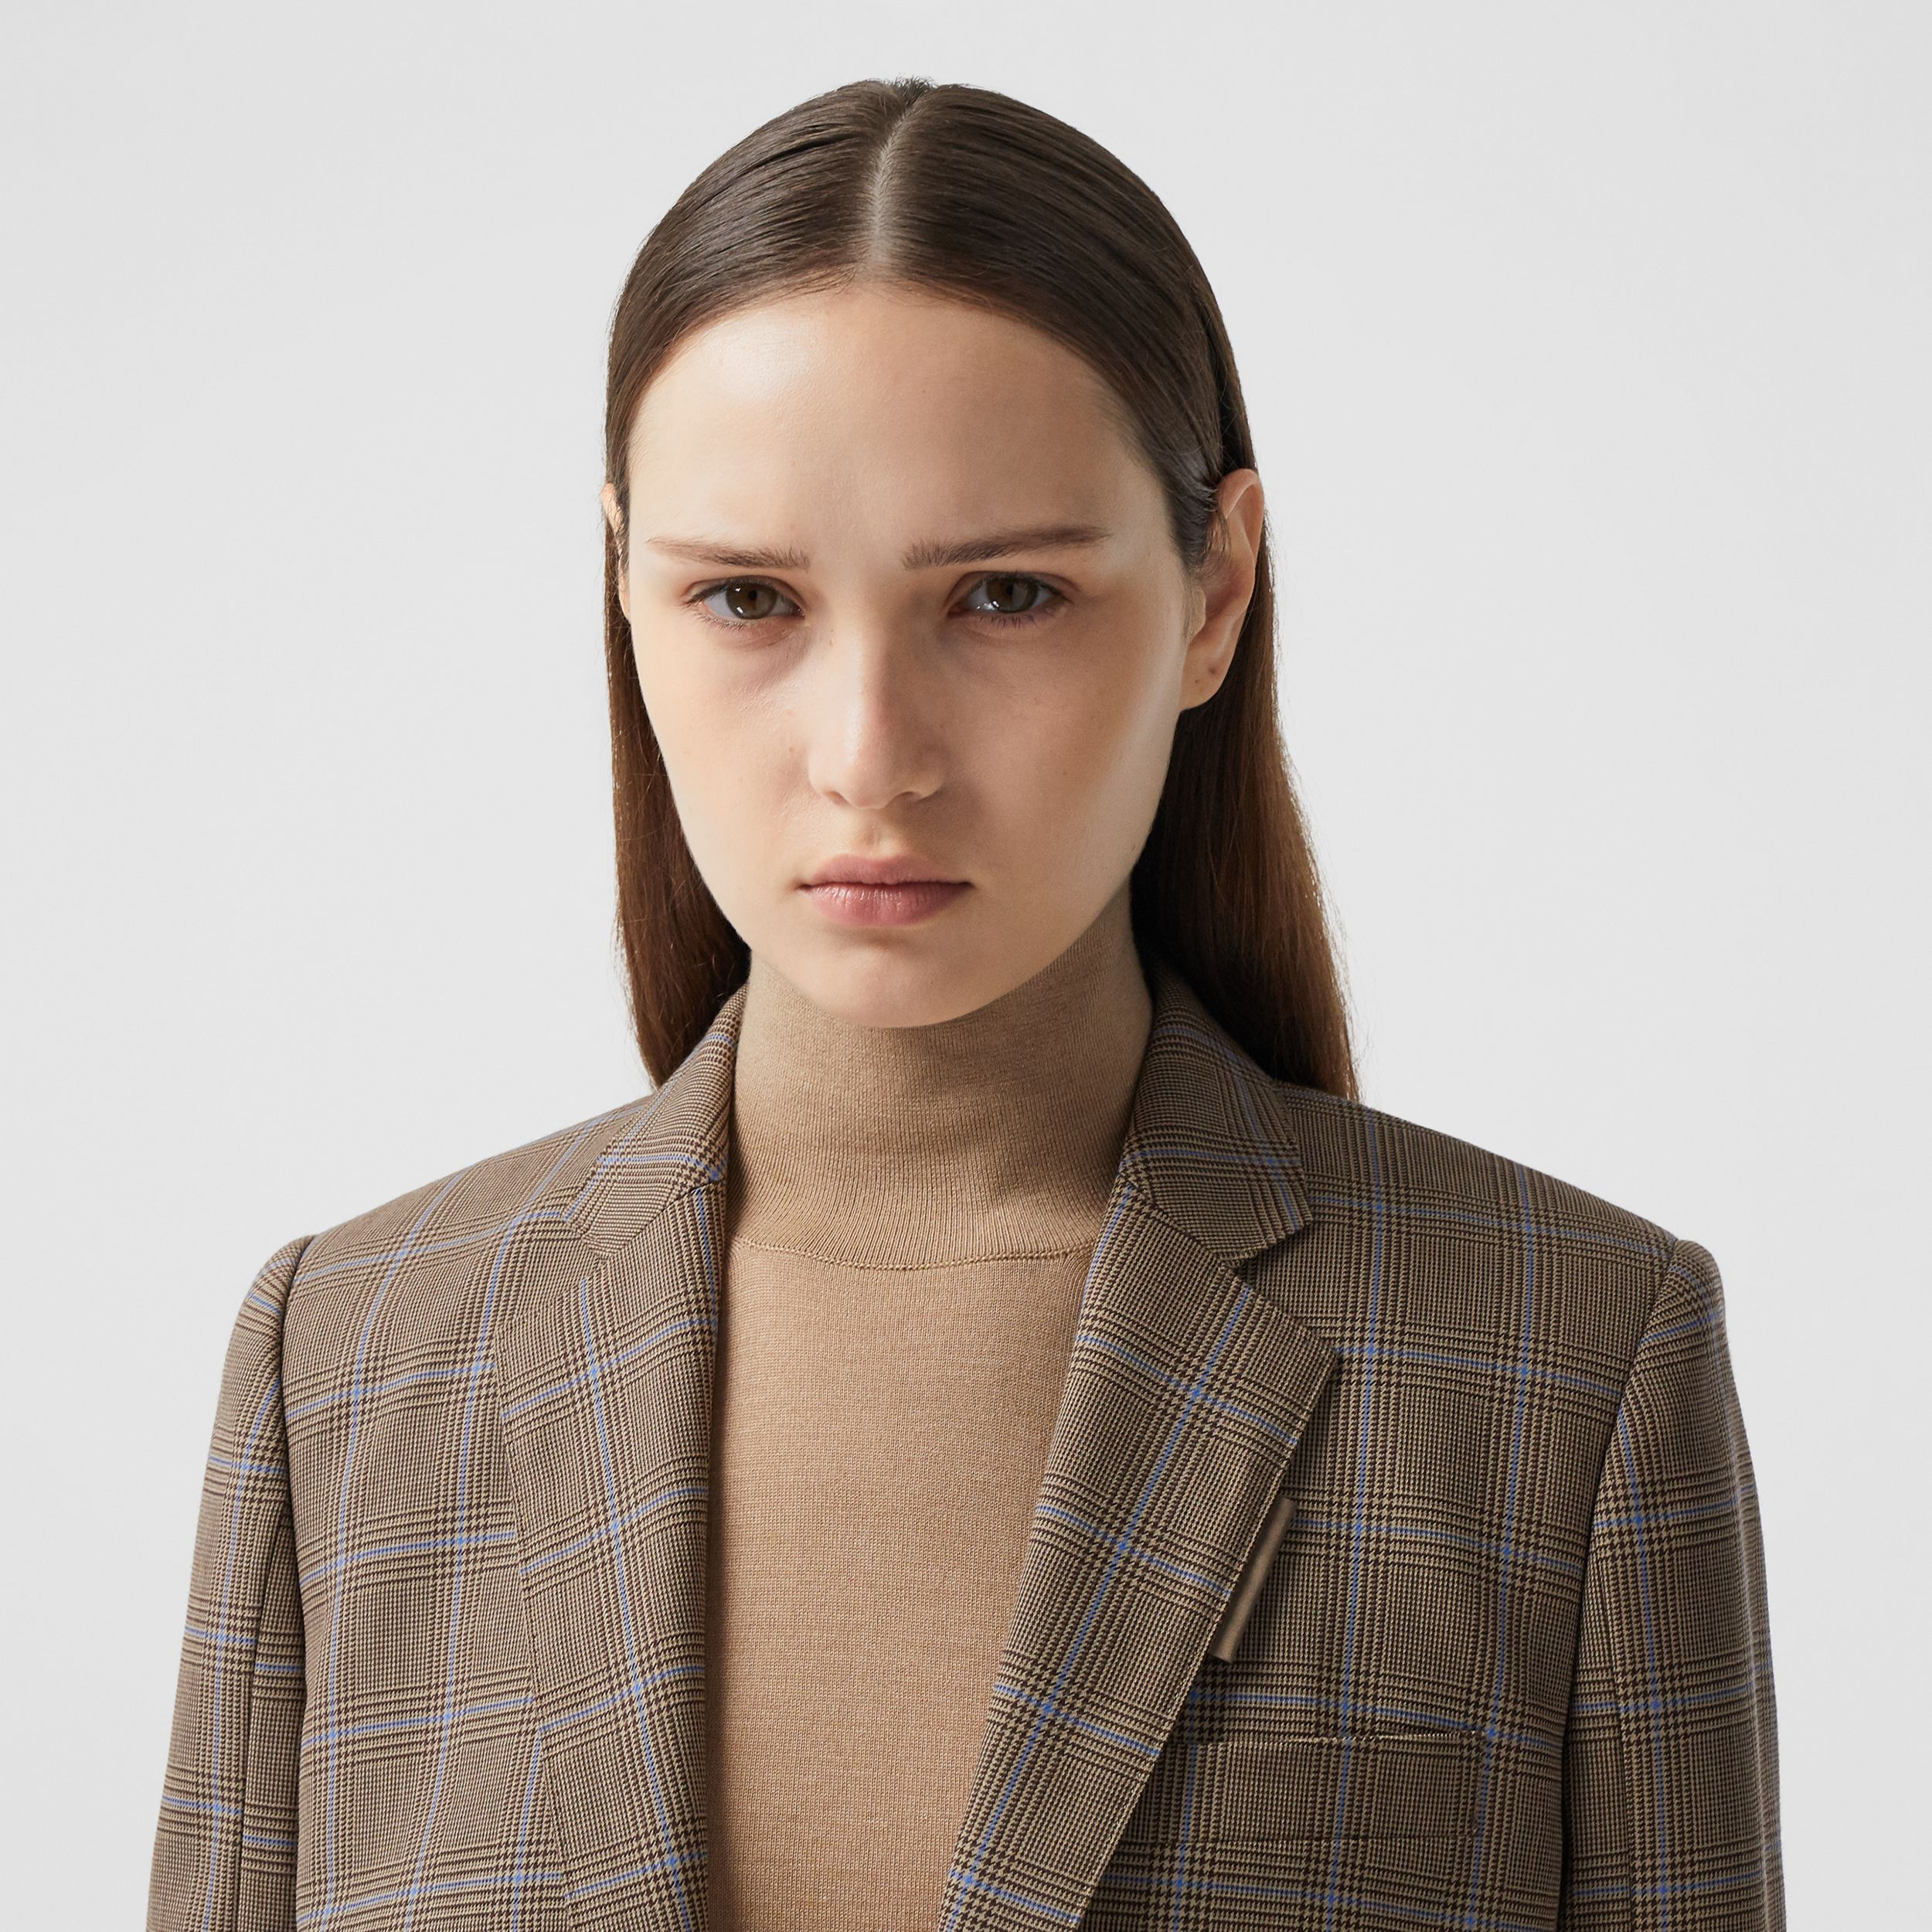 Prince of Wales Check Wool Tailored Jacket in Birch Brown - Women | Burberry - 2